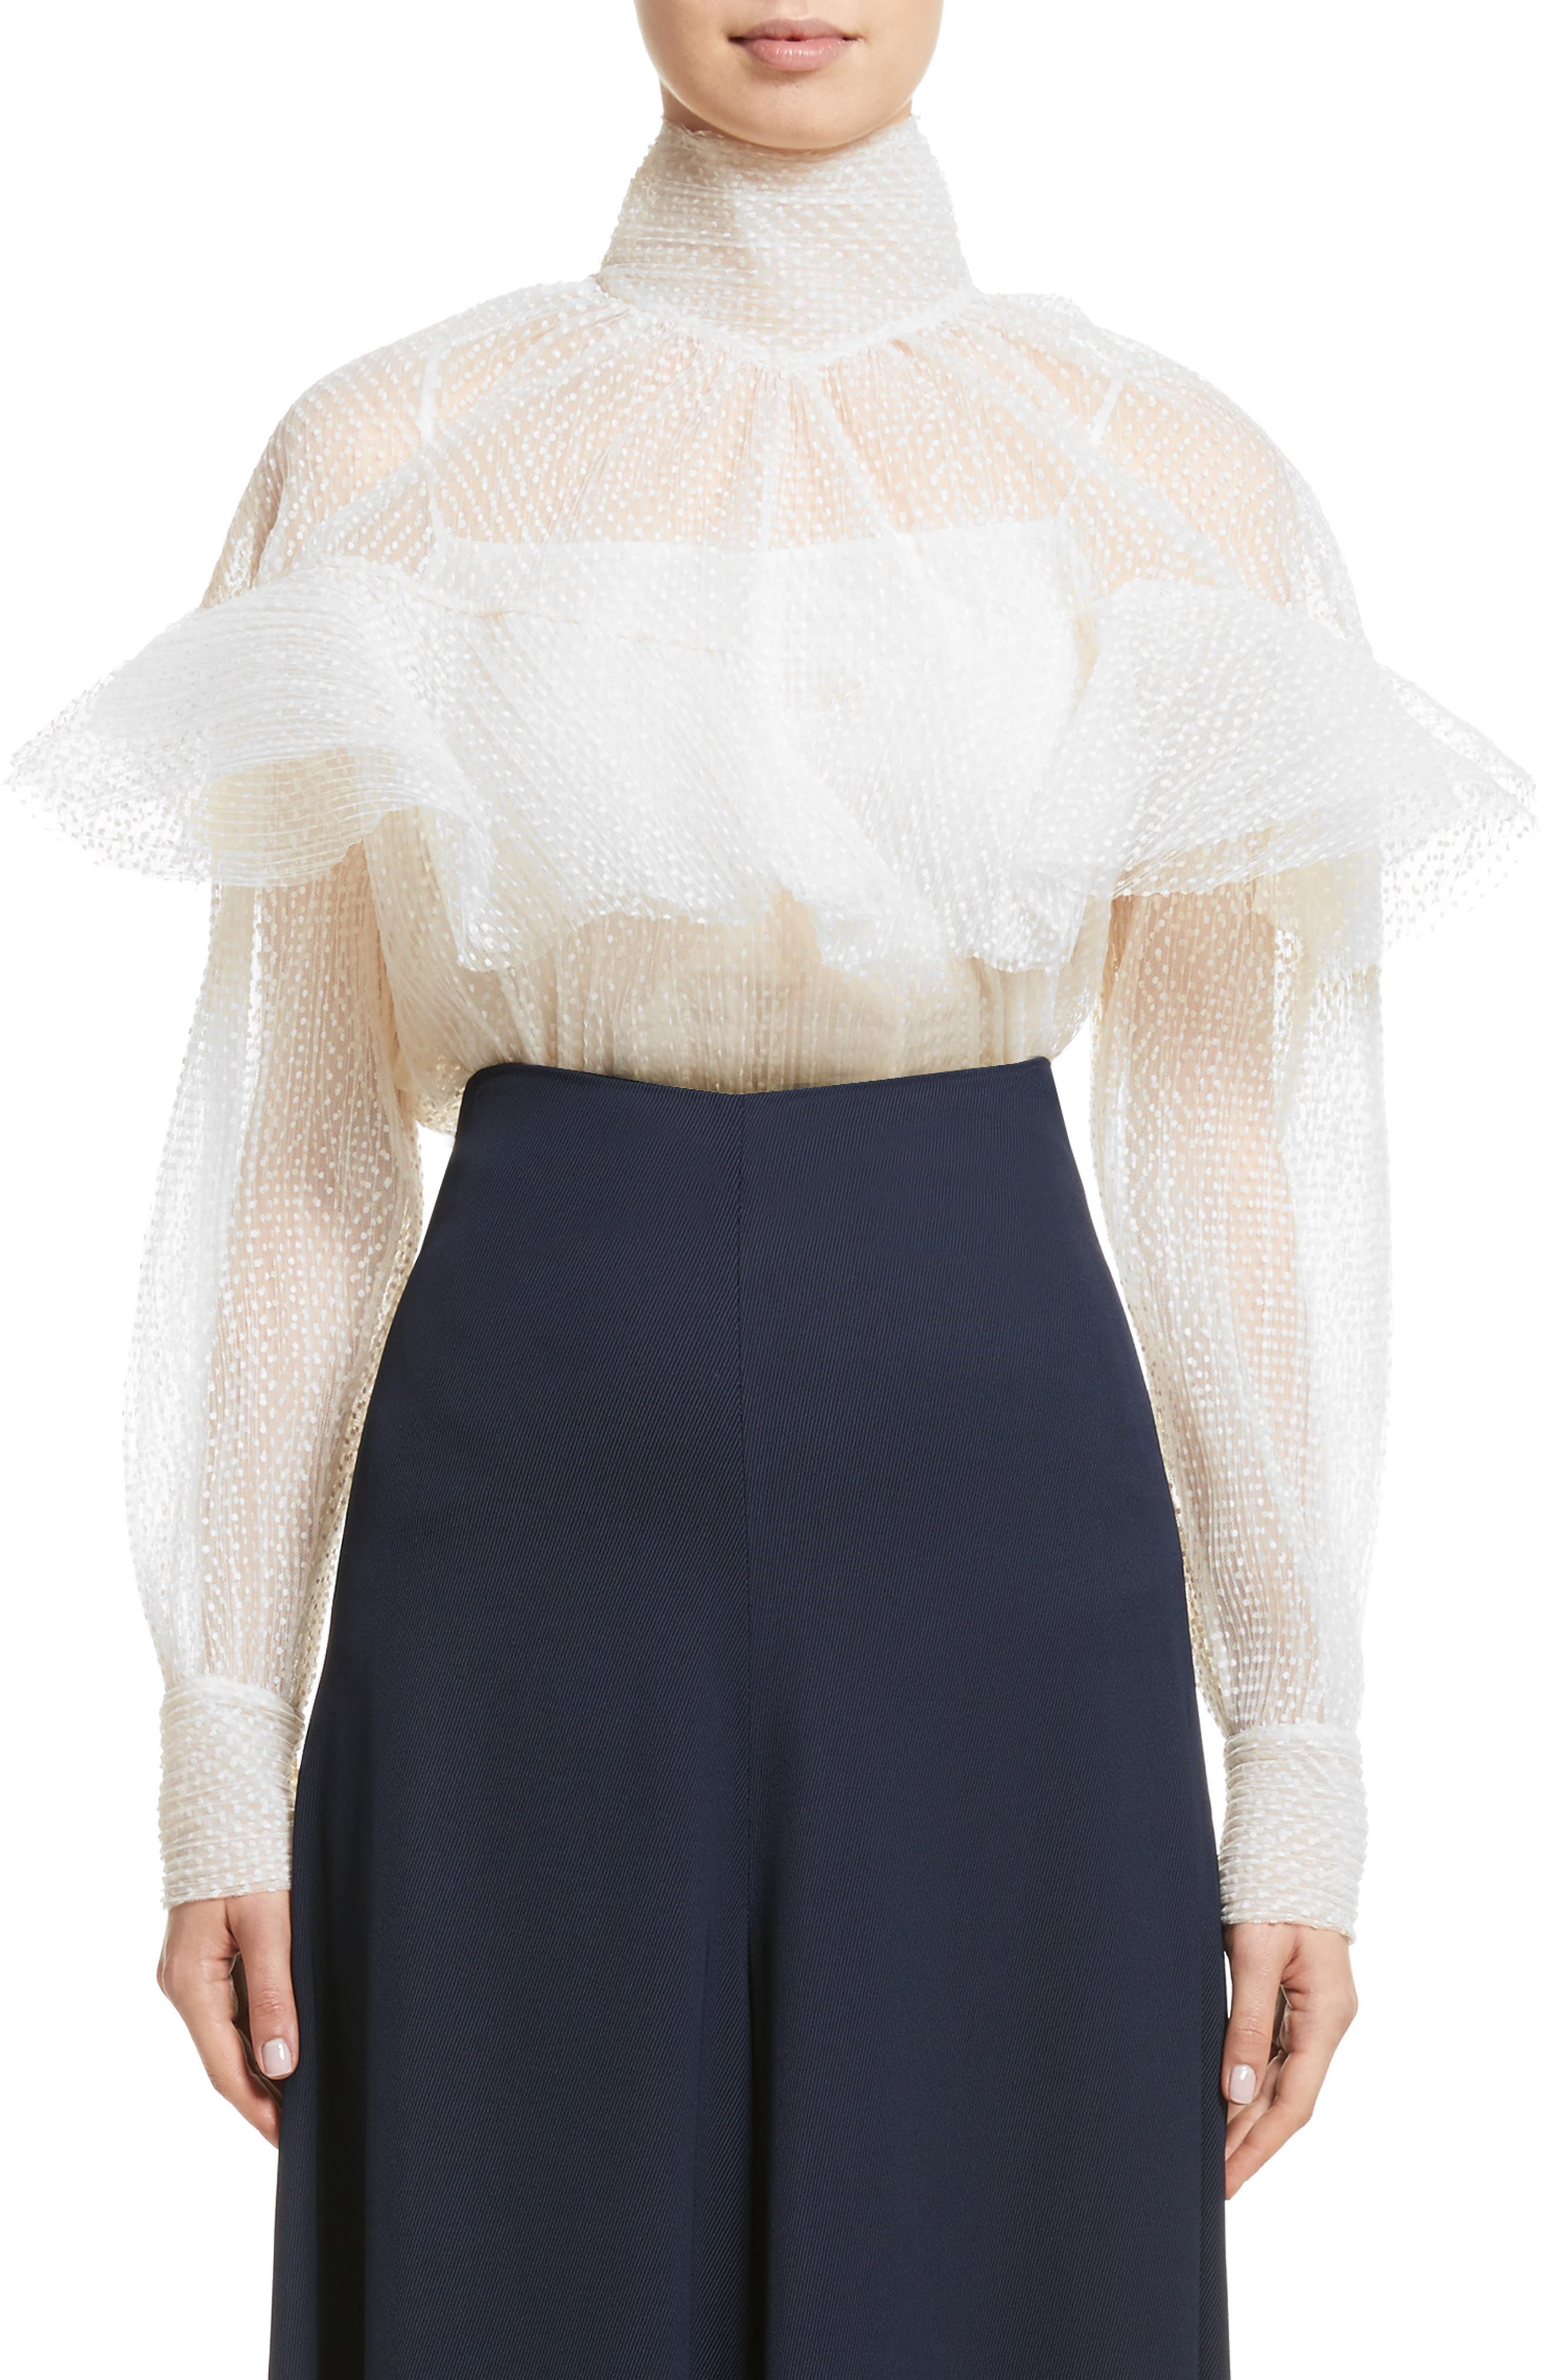 A.W.A.K.E Frill Double Layered Tulle Top,                             Main thumbnail 1, color,